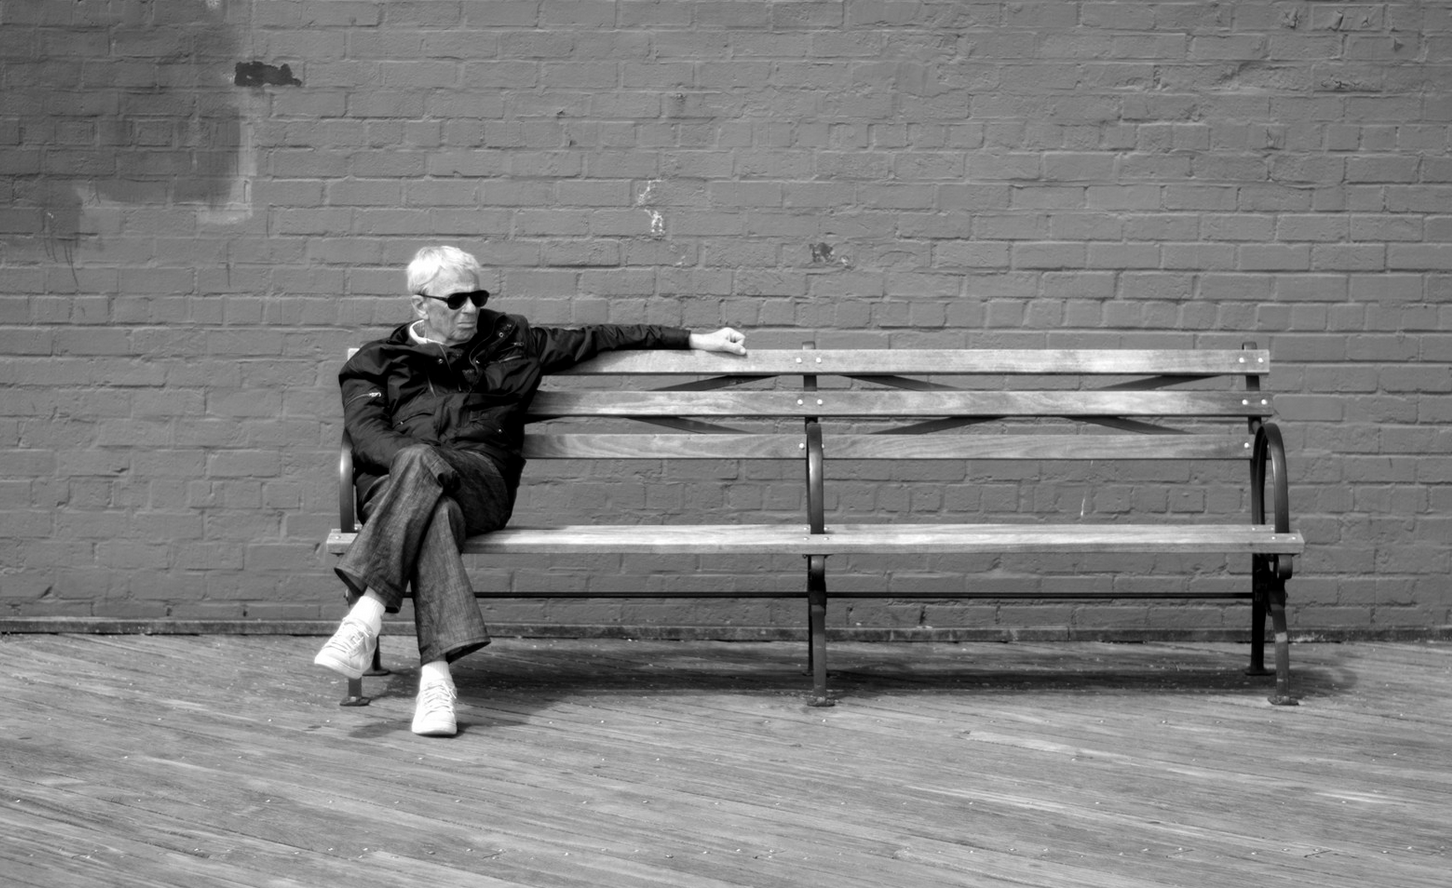 An image of an older man sitting on a bench